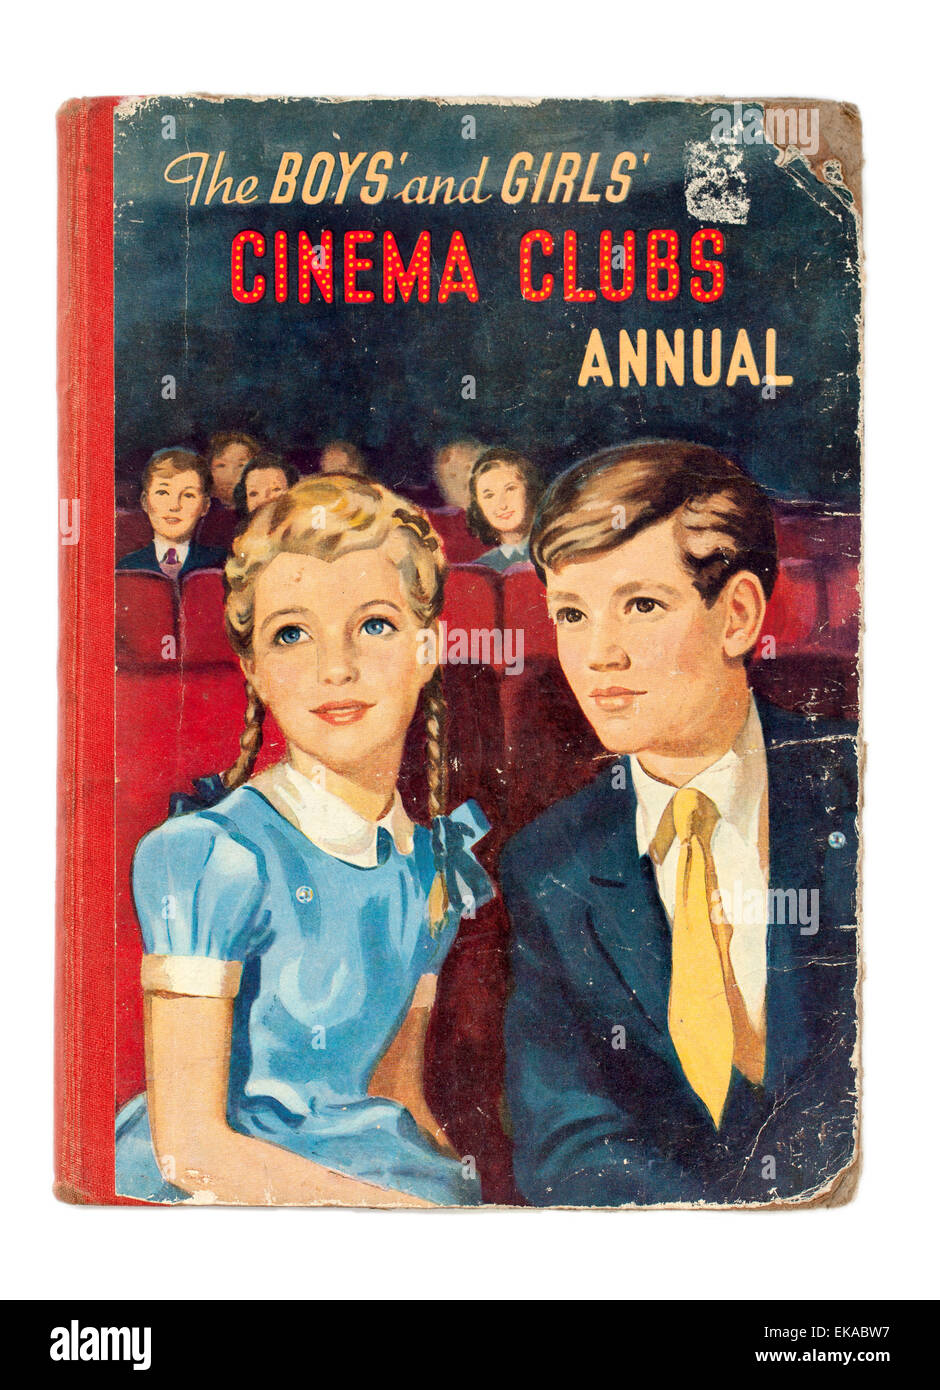 Vintage Copy of the Boys and Girls Cinema Clubs Annual - Stock Image